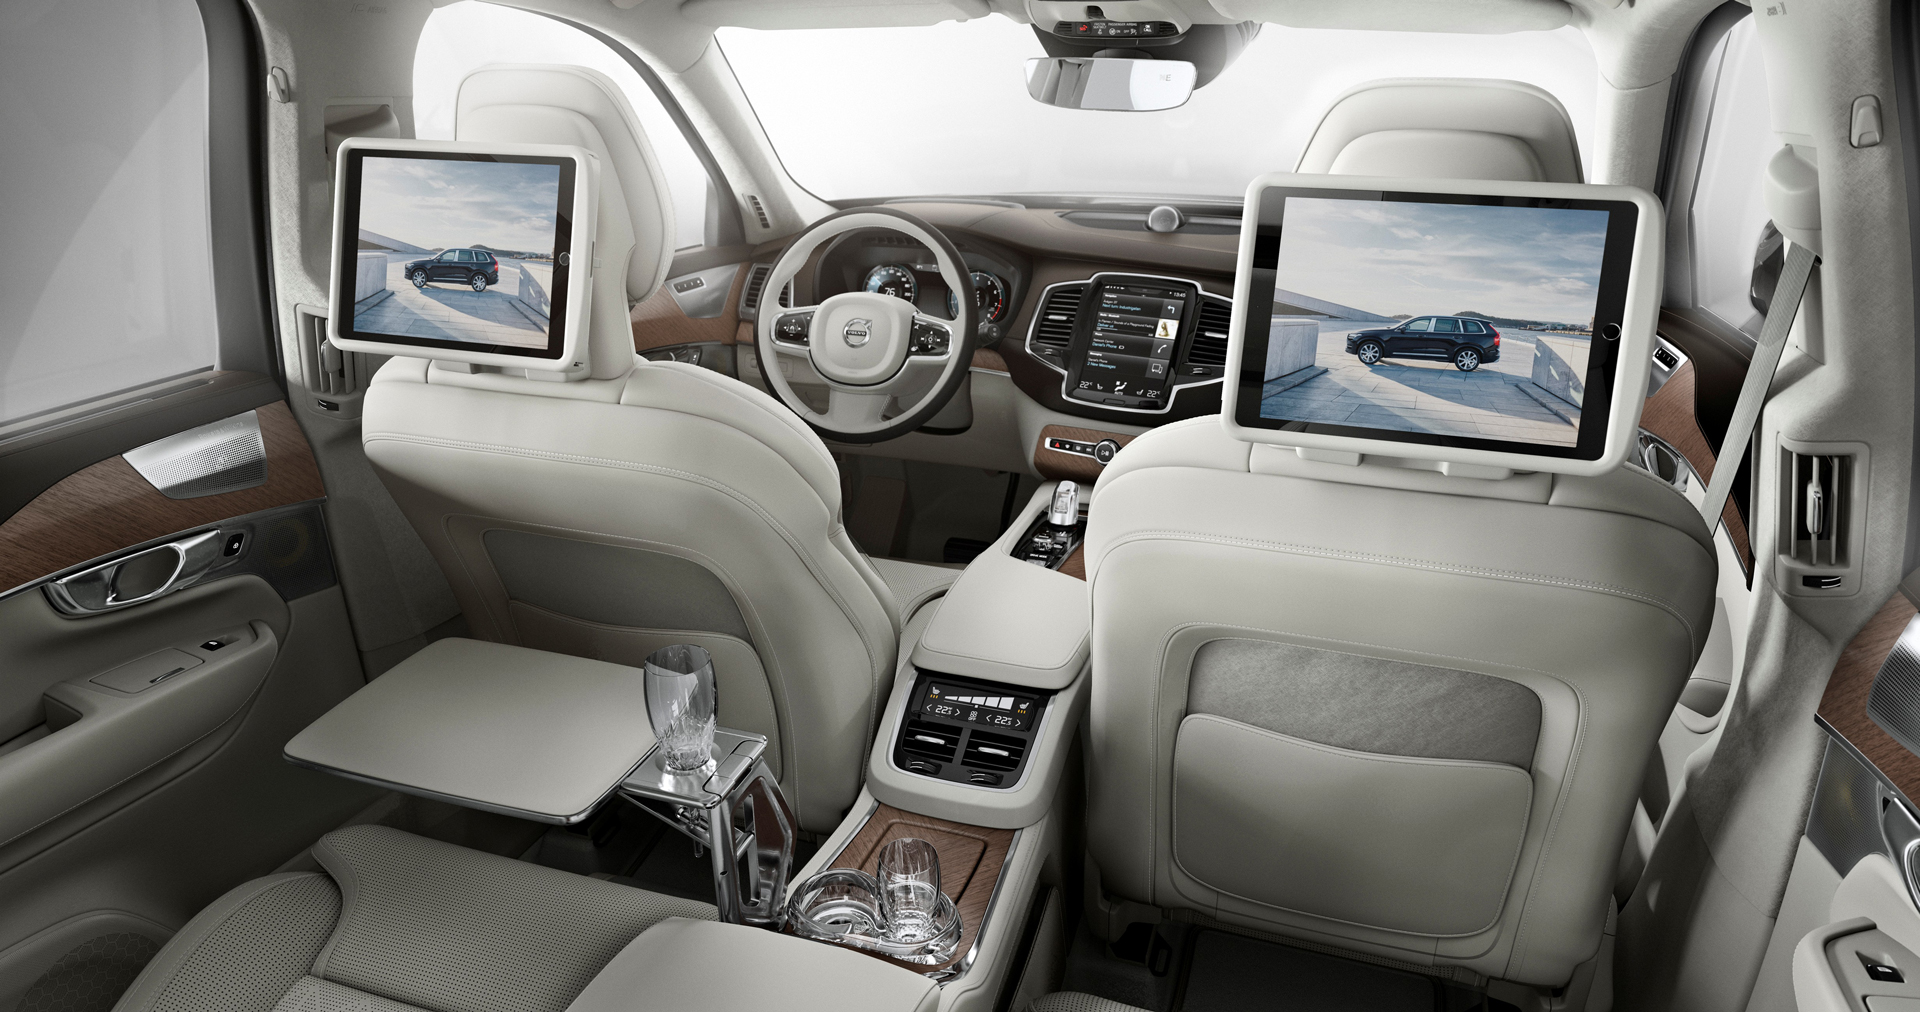 Volvo xc90 le suv the best design au moteur hybrid 400 ch for Interieur xc90